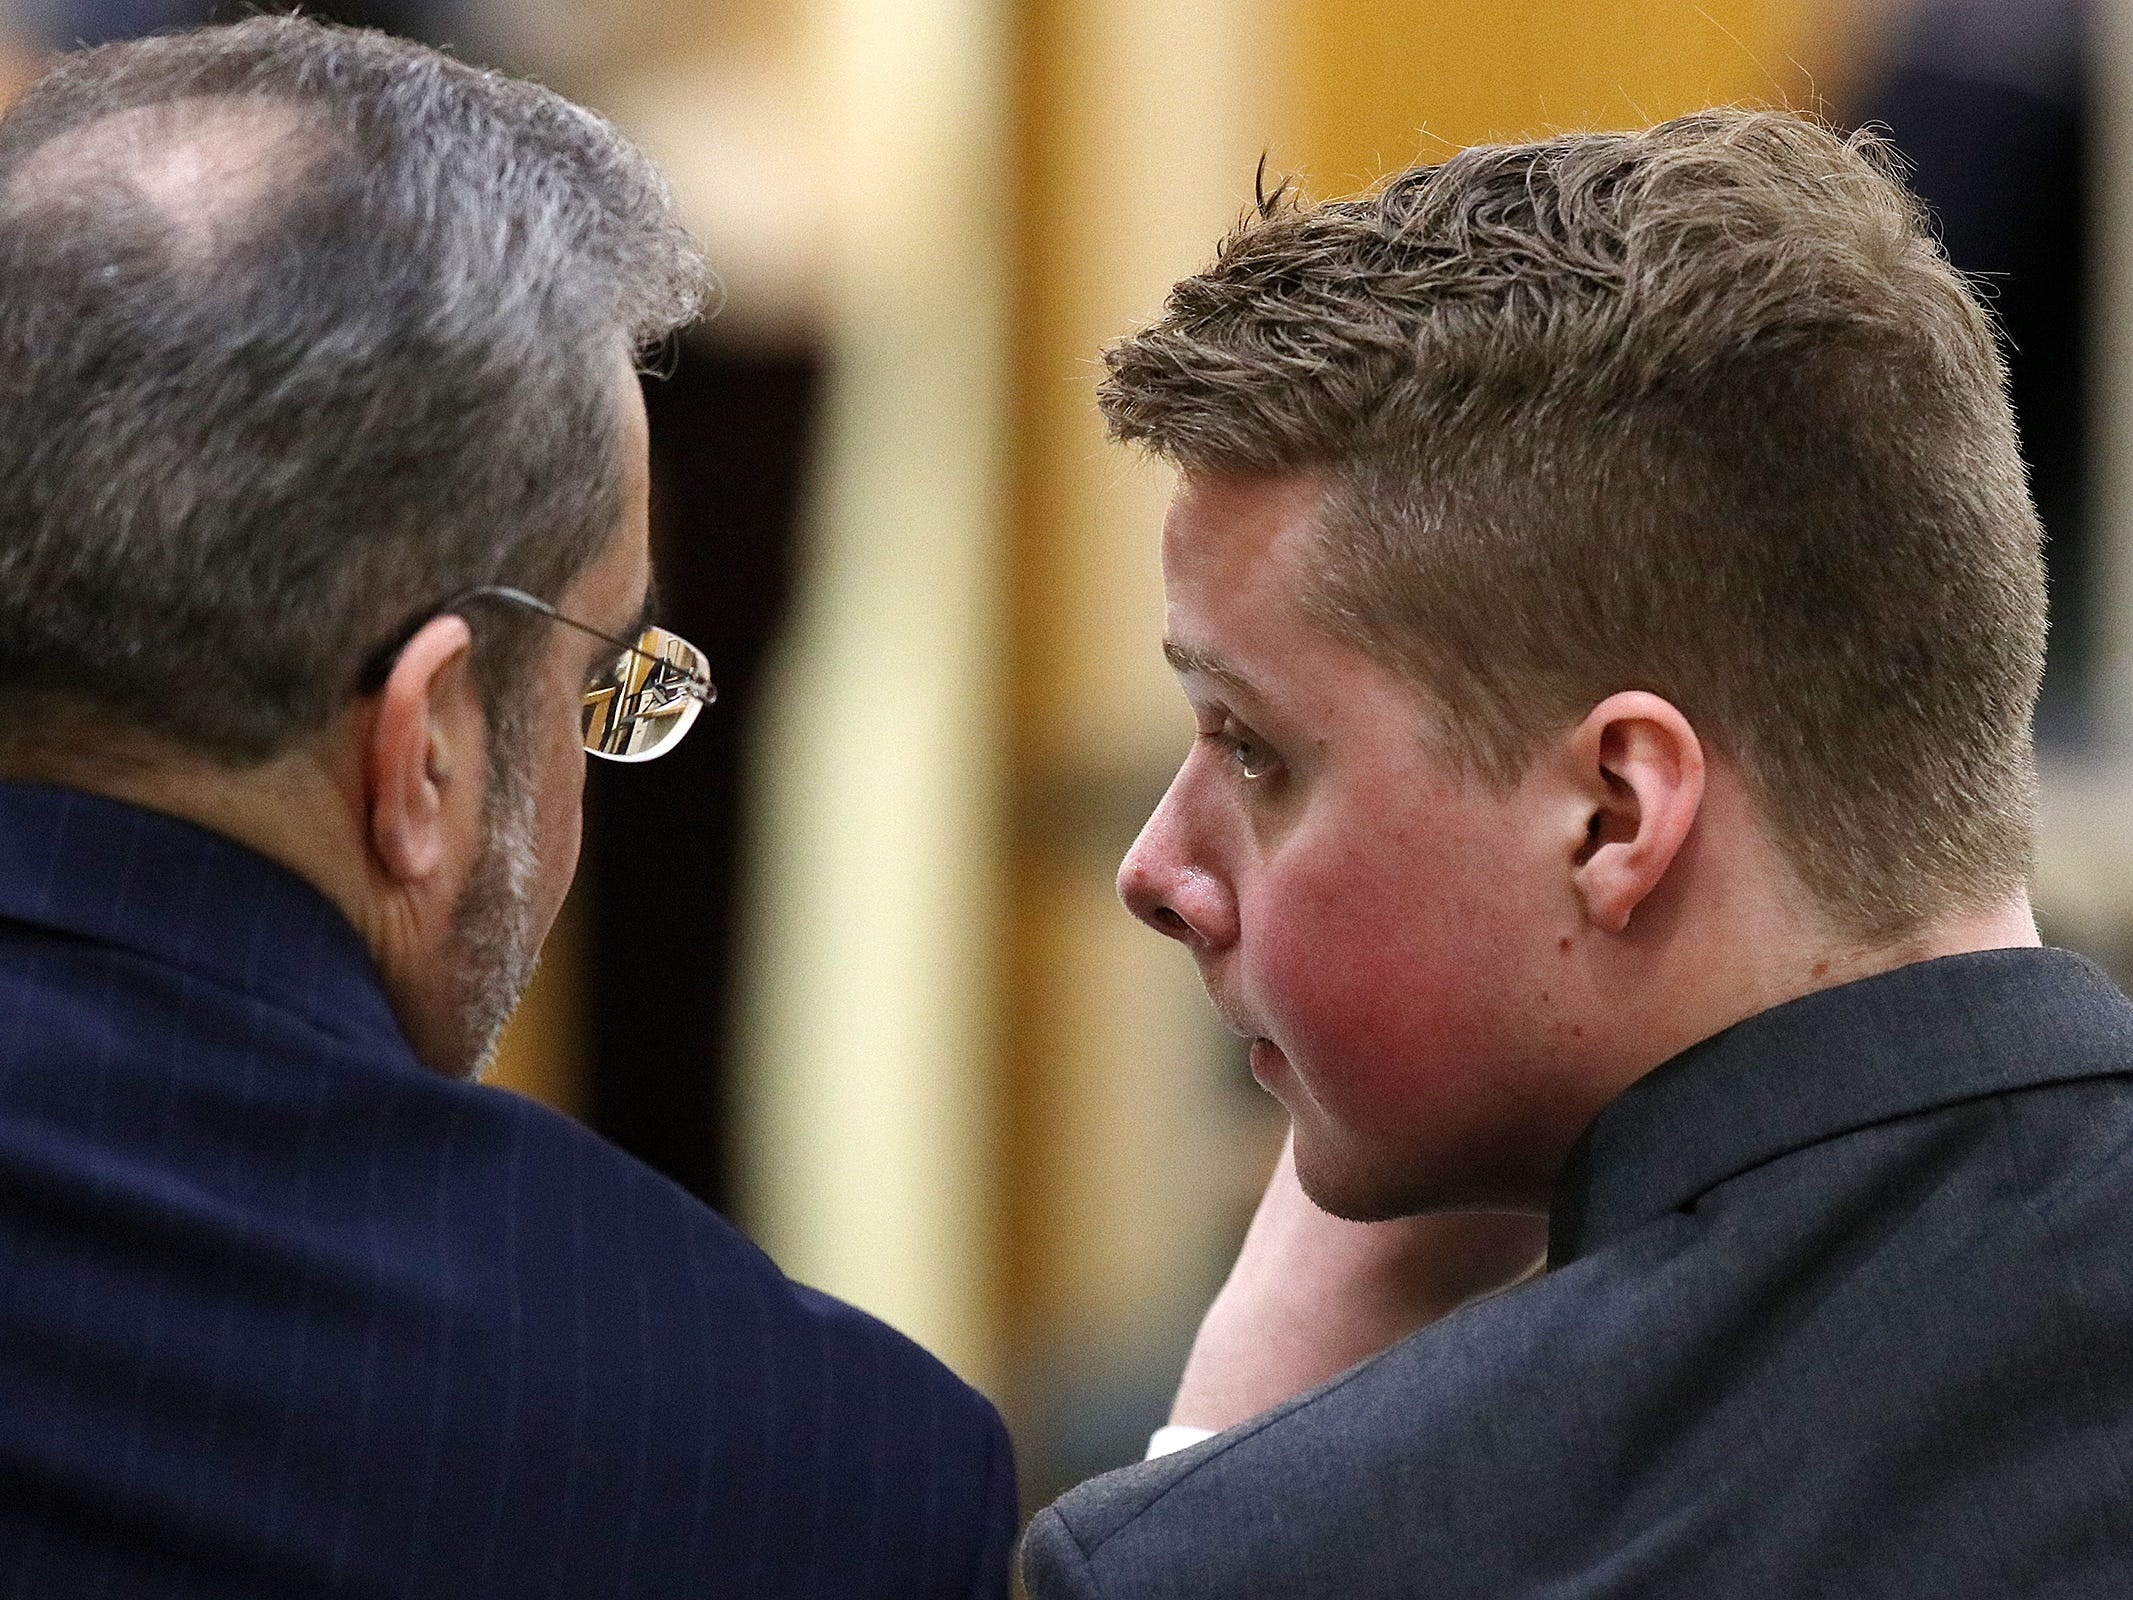 Liam McAtasney, who is charged with the murder of former high school classmate, Sarah Stern, talks to his lawyer, Carlos Diaz-Cobo, during trial before Superior Court Judge Richard W. English at the Monmouth County Courthouse in Freehold, NJ Thursday, February 7, 2019.